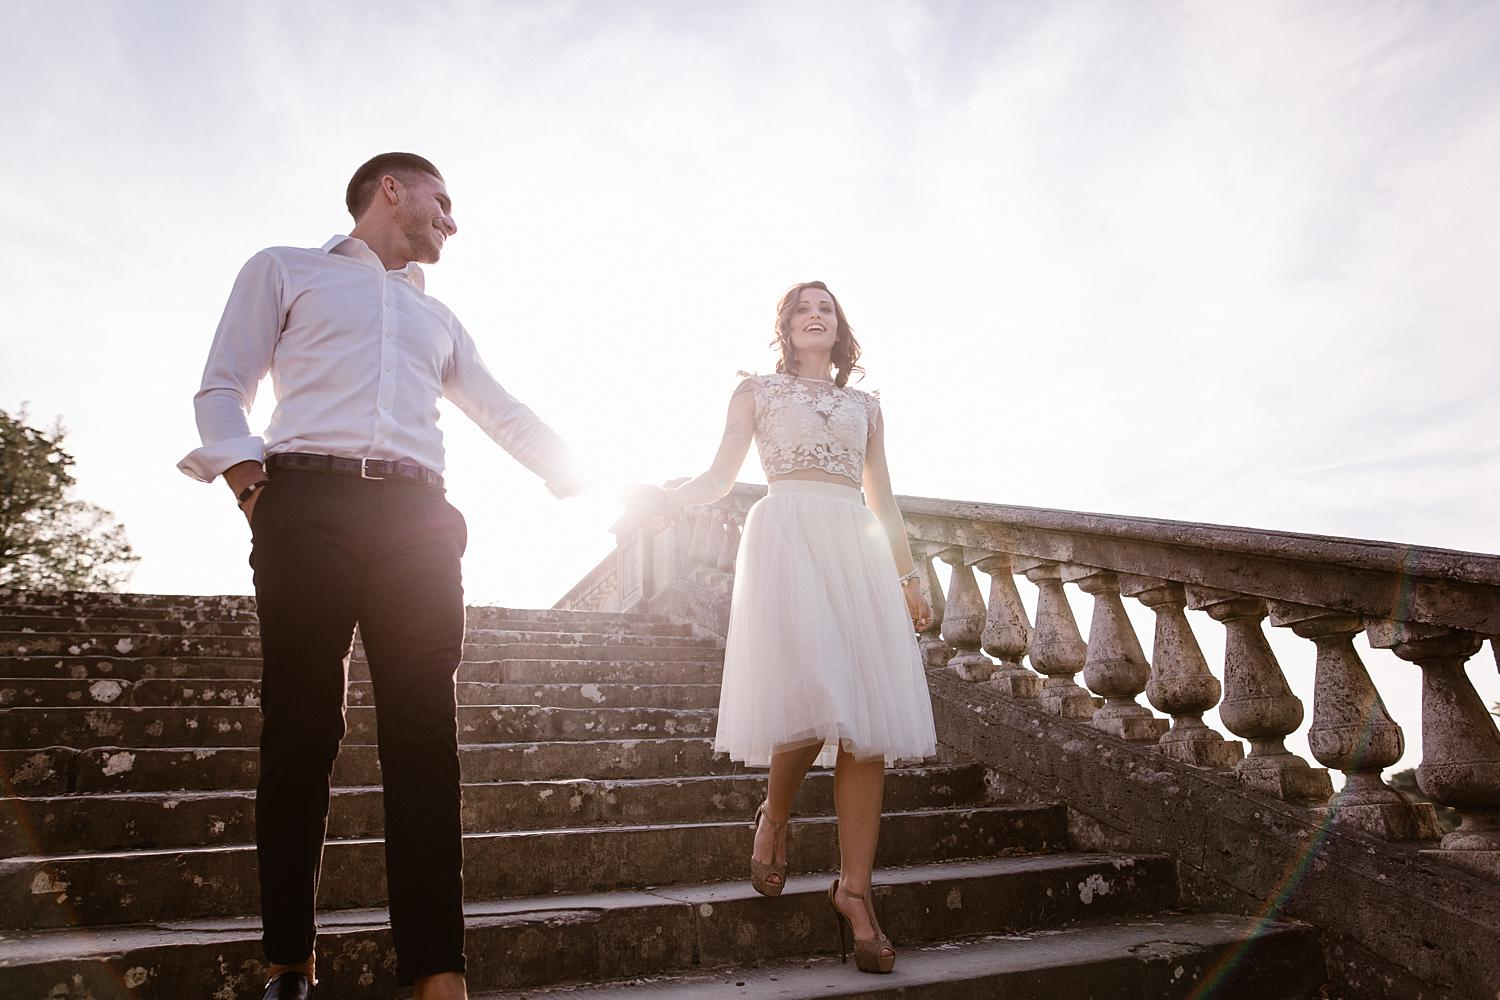 weddingphotographer florence 39 - Maddalena & Arturo - A Chic Anniversary Session in Florence